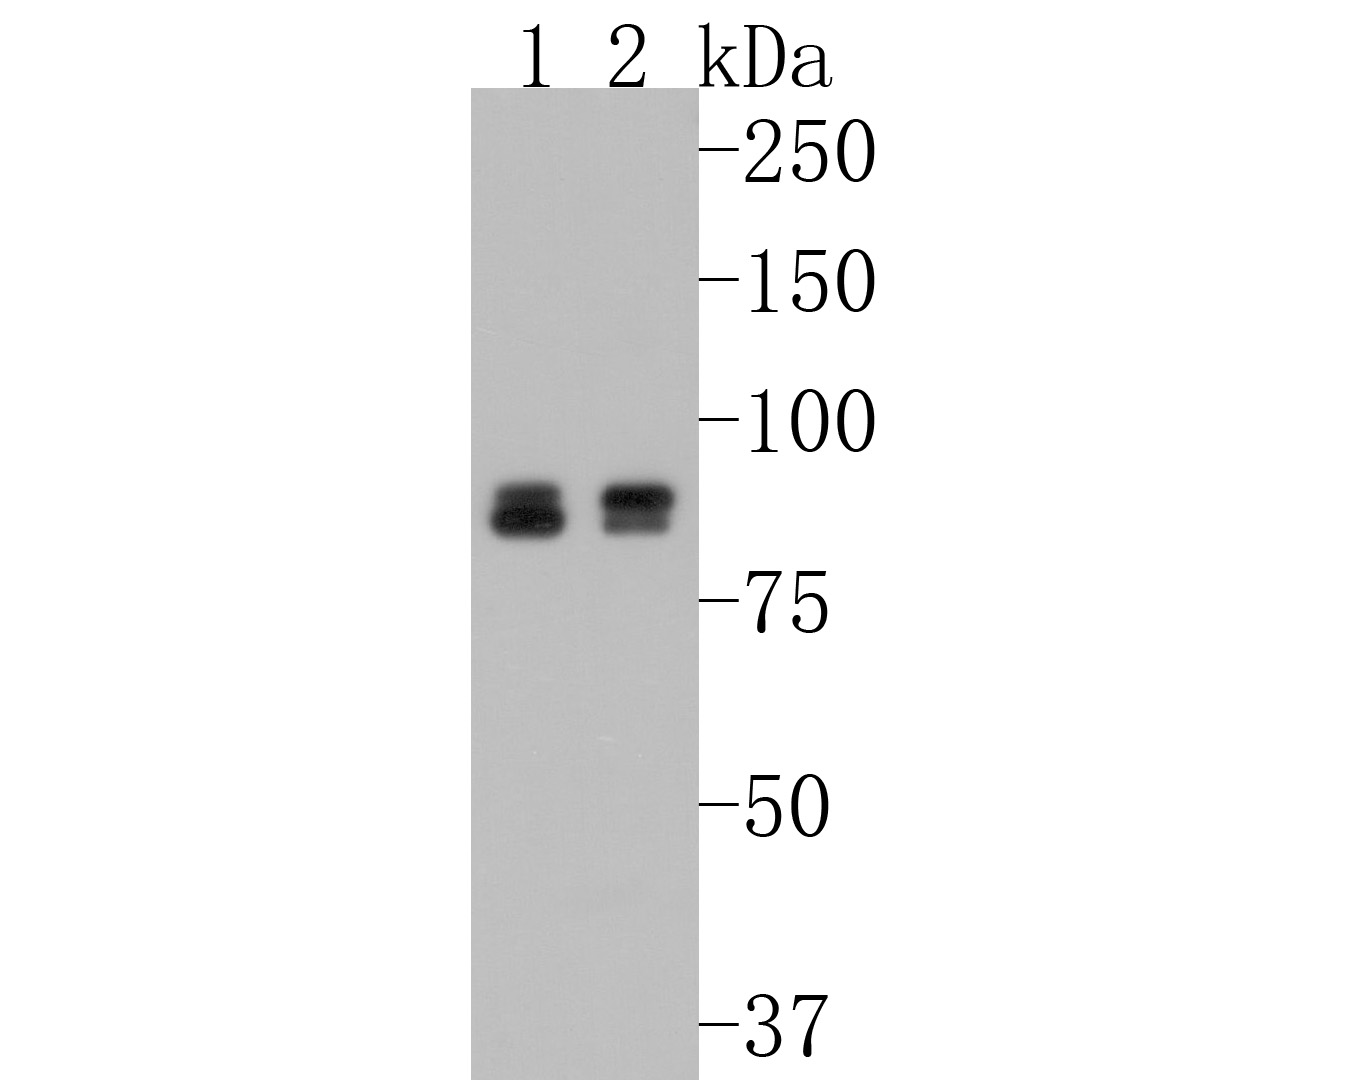 Western blot analysis of Cullin 4a on Hela cell lysates using anti-Cullin 4a antibody at 1/500 dilution.